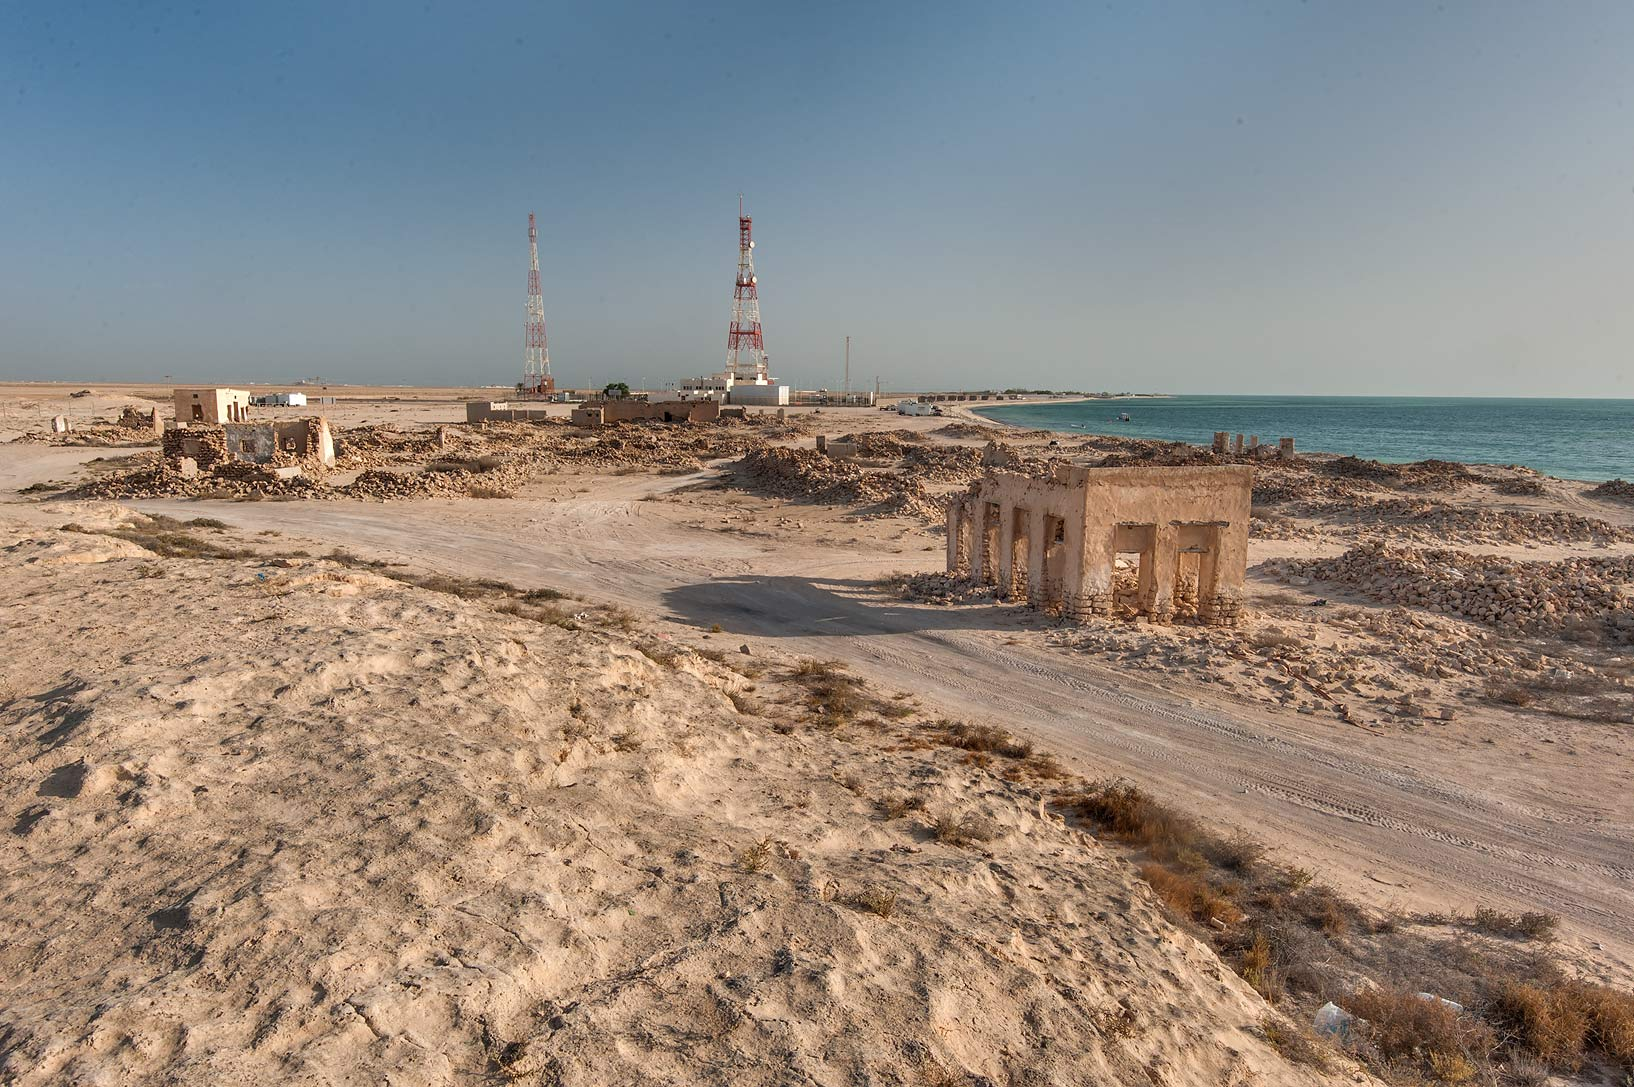 View from a jebel (stone hill) of old fishing...eastern coast, Ash Shamal area. Qatar